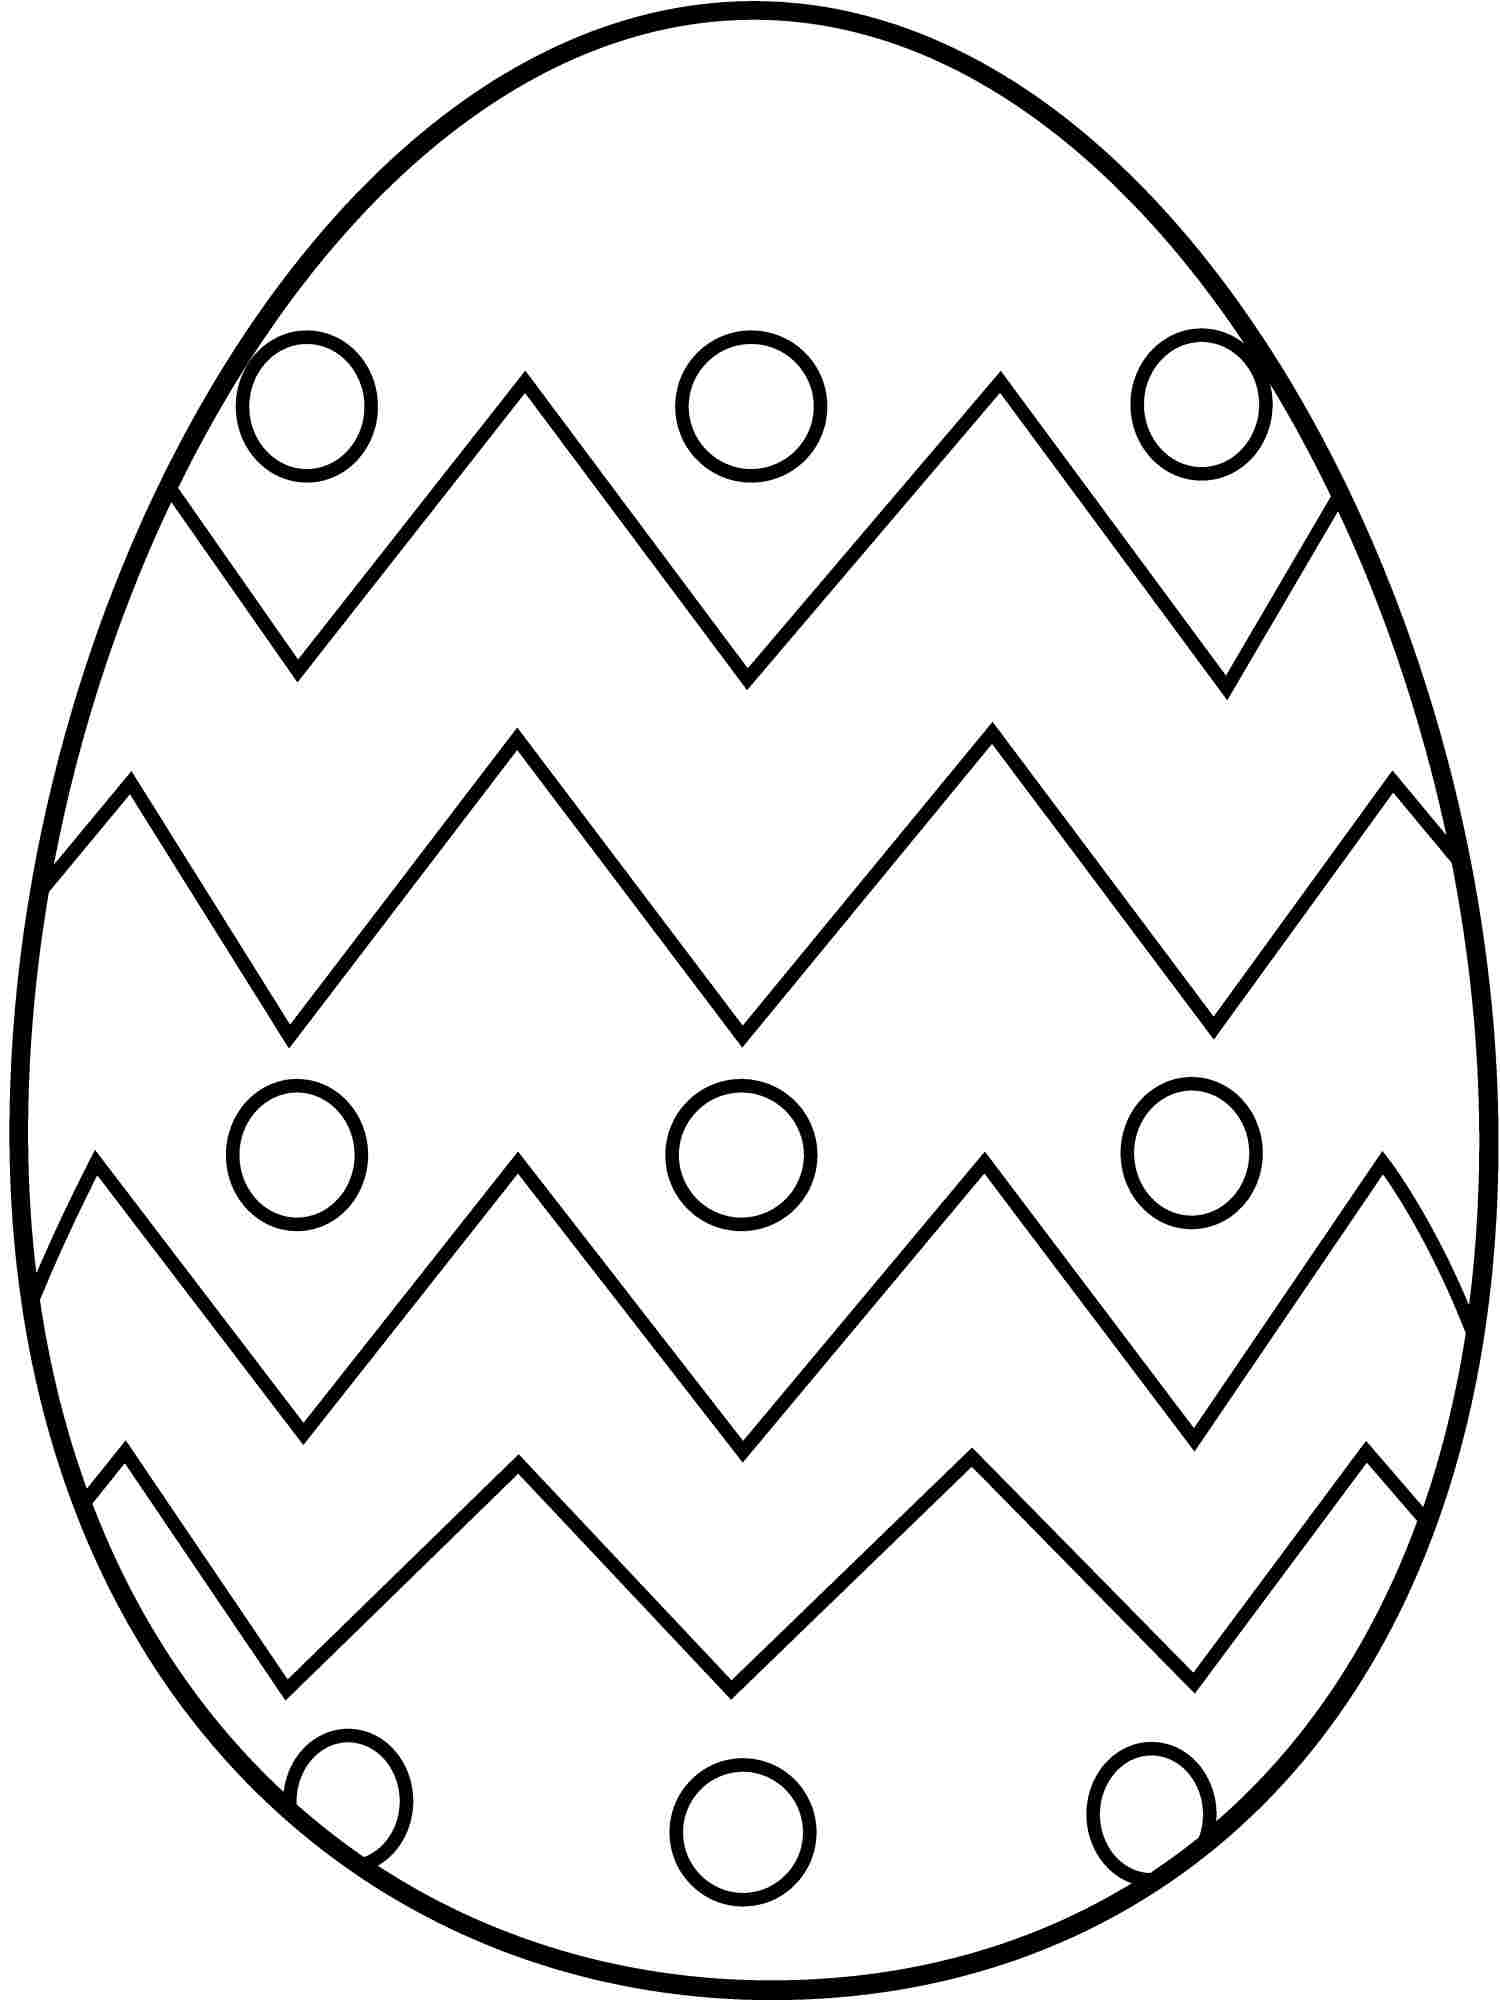 Plain Easter Egg Coloring Pages at GetDrawings.com | Free ...